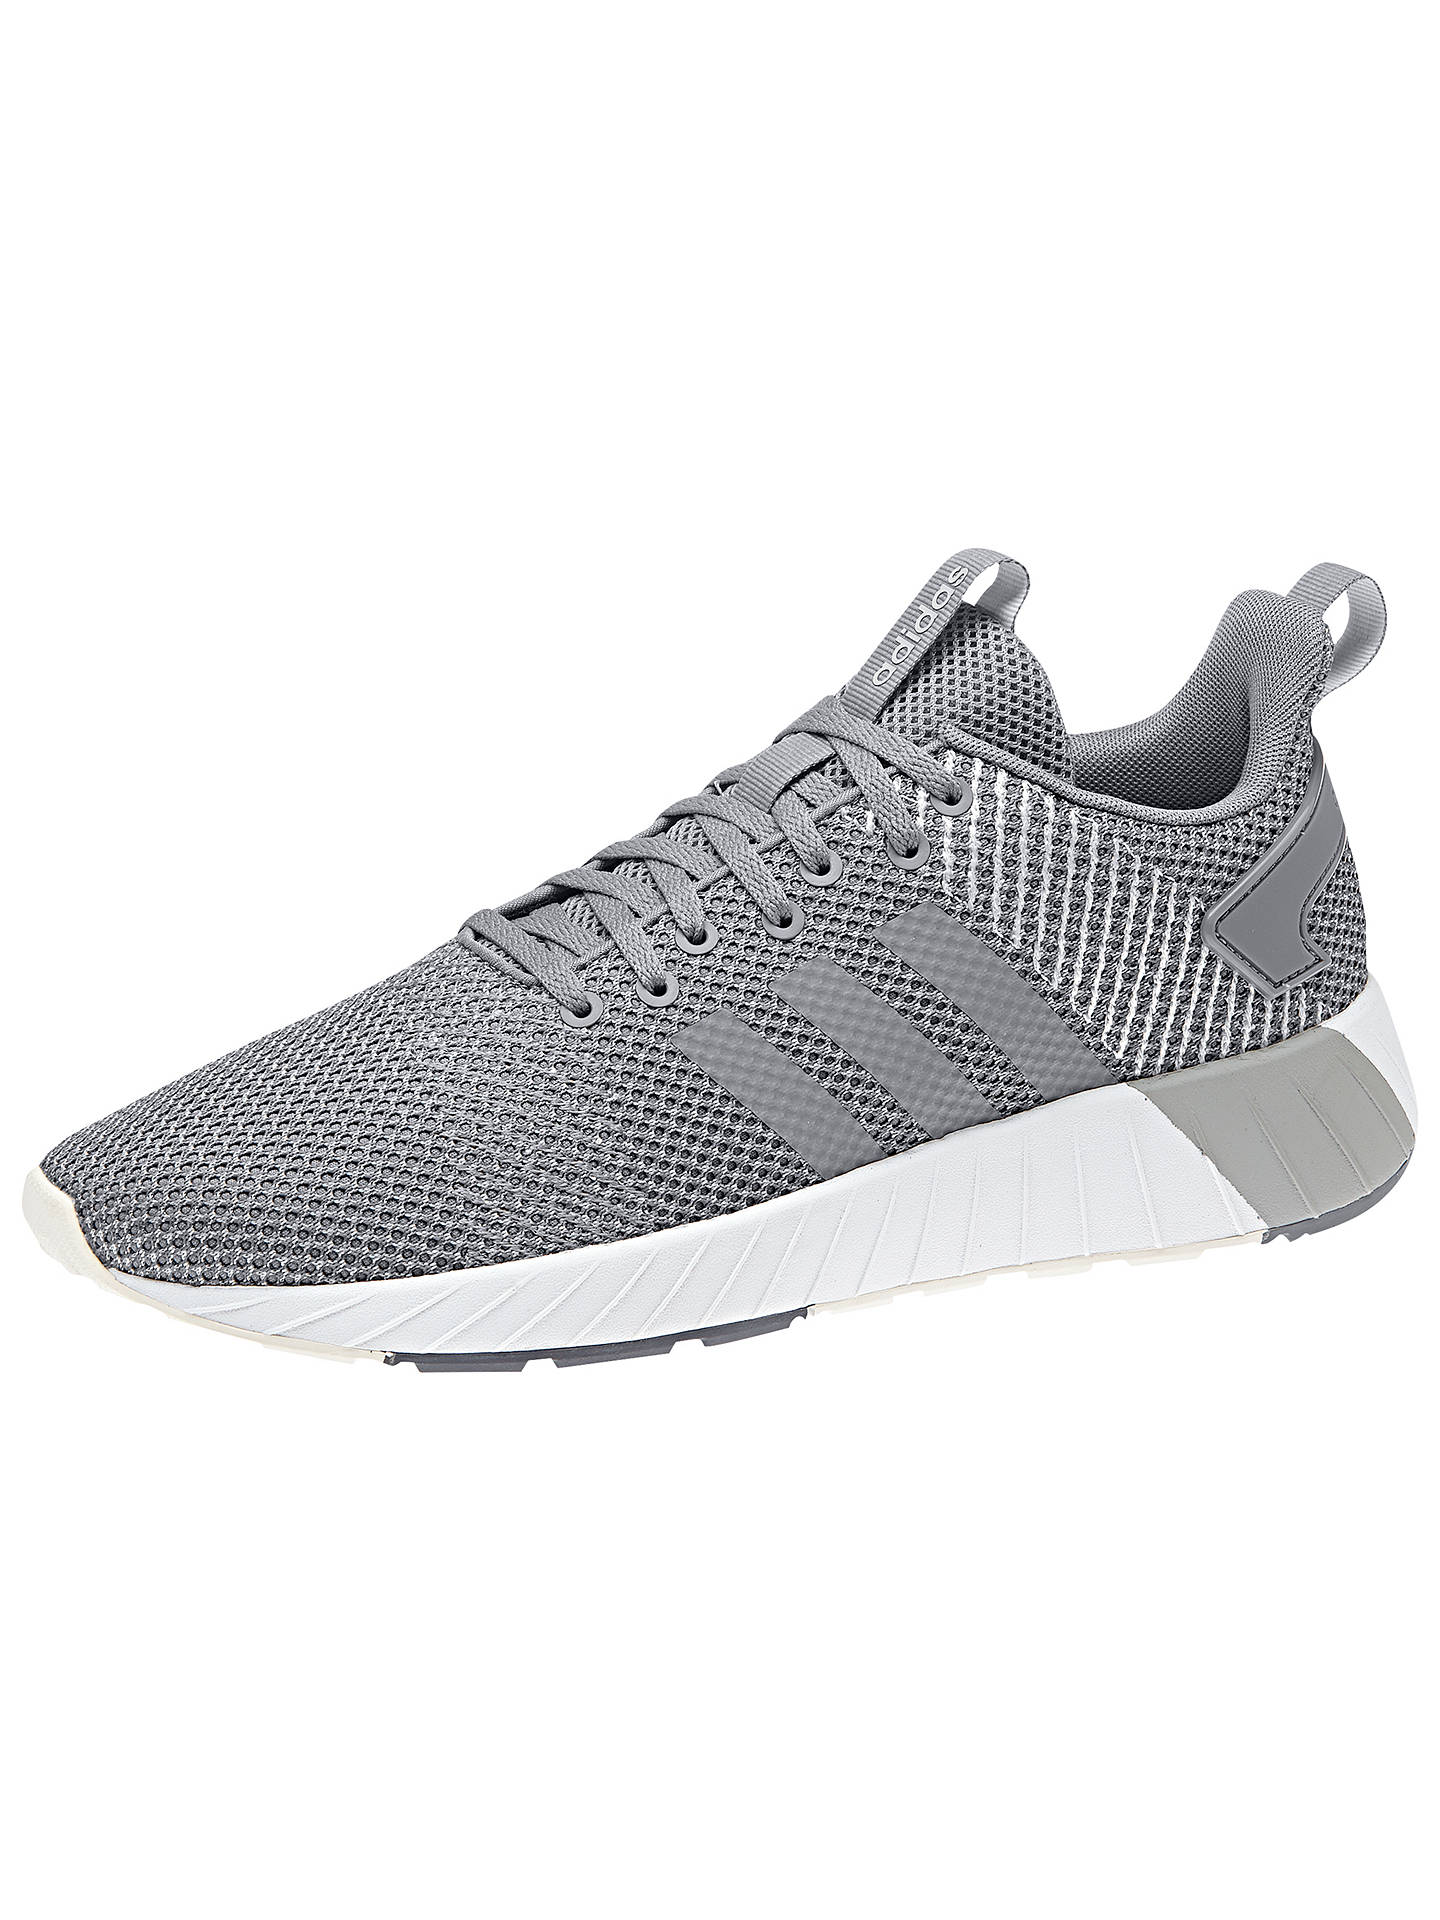 Buyadidas Questar BYD Men's Running Shoes, Grey/White, 7 Online at johnlewis.com